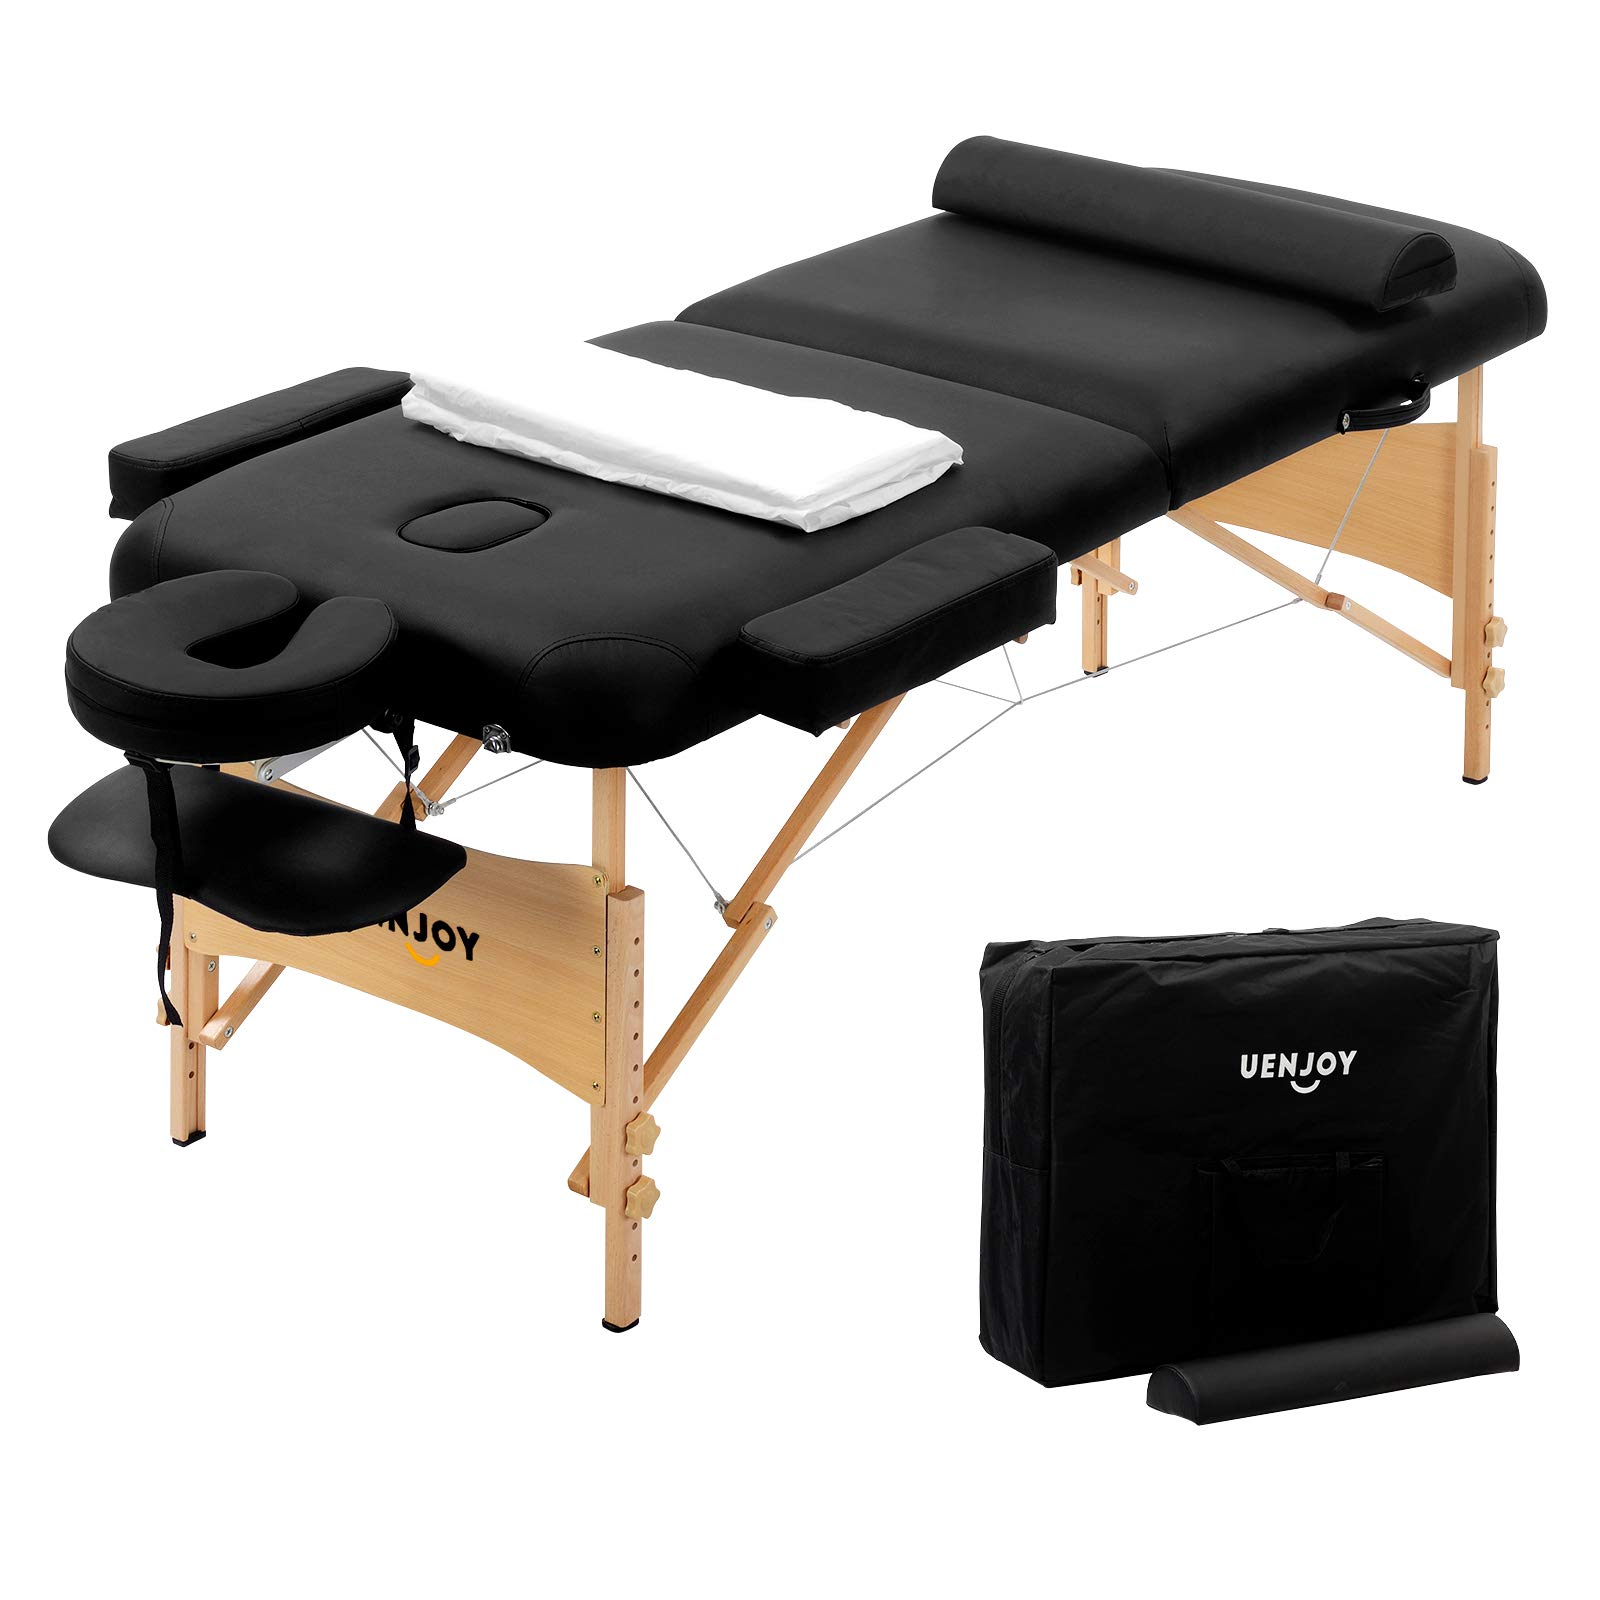 Uenjoy Massage Table 84'' Professional Folding Massage Bed Deluxe Model with Extra Width, Ultra-thick Sponge, PU Leather Surface & Additional Accessories, 2 Fold, Black by Uenjoy (Image #2)